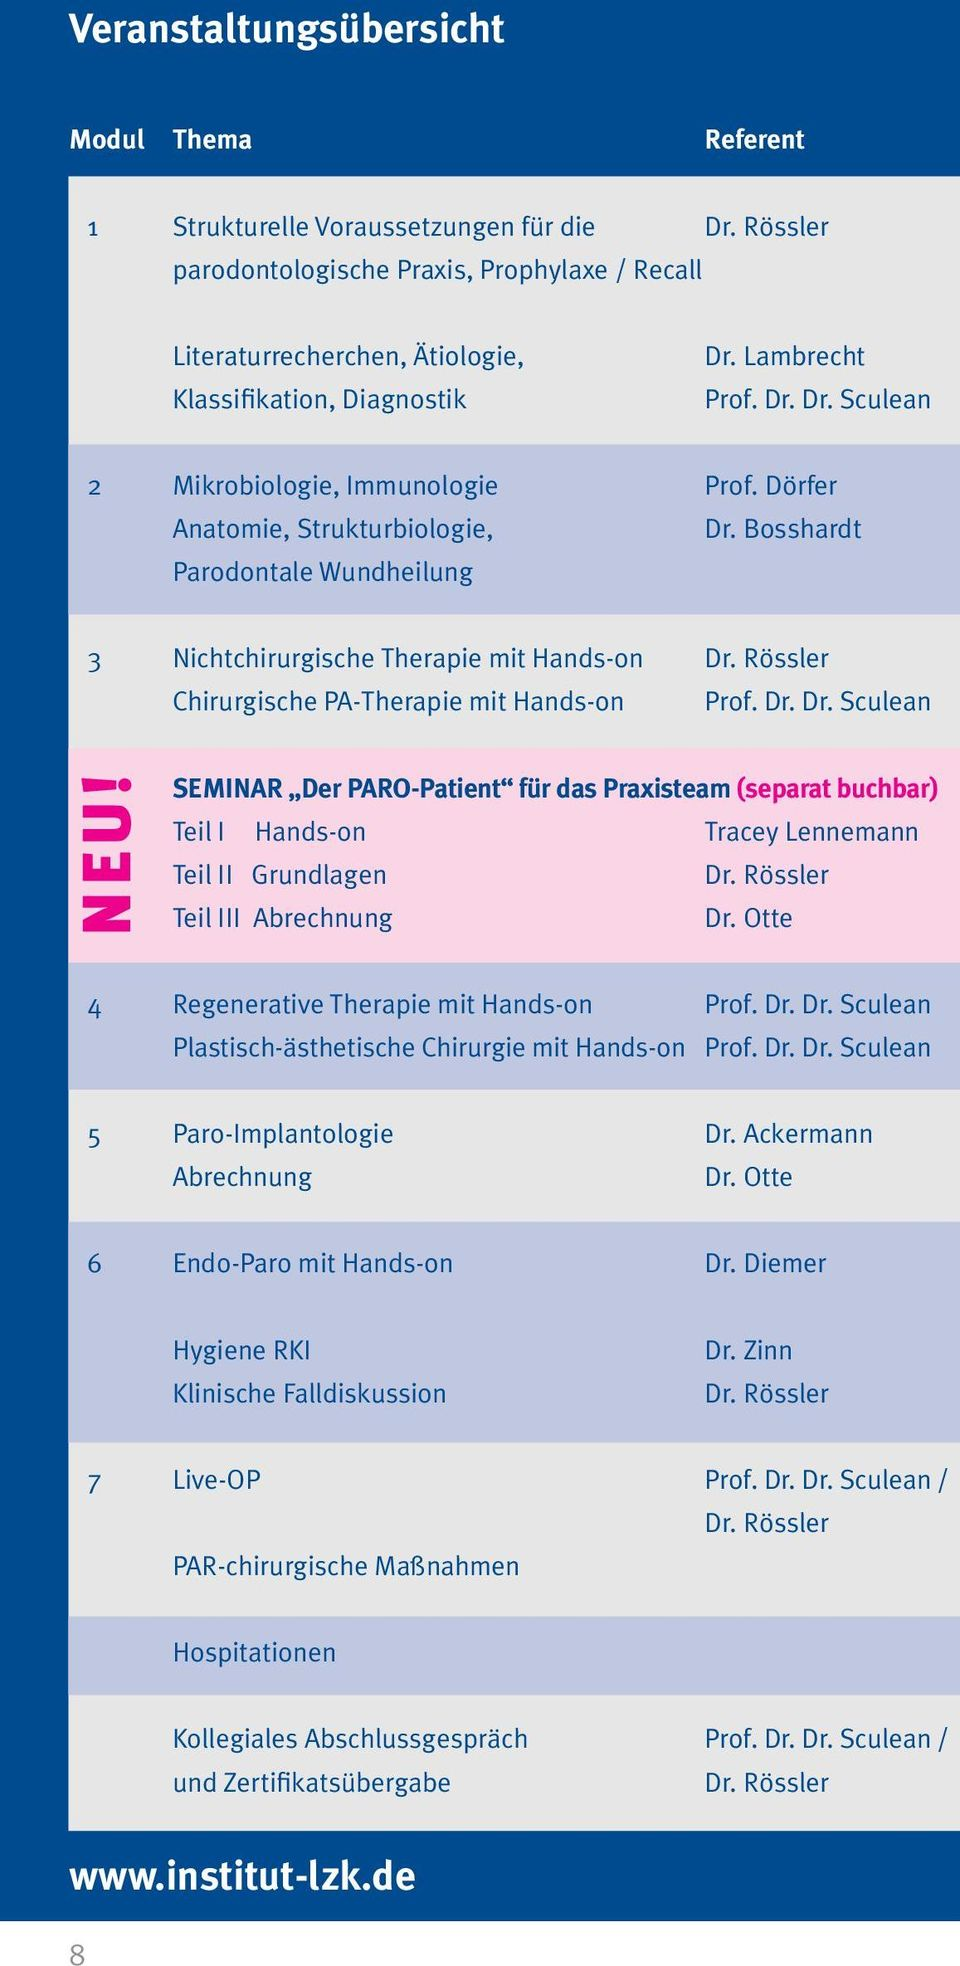 Dörfer Anatomie, Strukturbiologie, Dr. Bosshardt Parodontale Wundheilung 3 Nichtchirurgische Therapie mit Hands-on Dr. Rössler Chirurgische PA-Therapie mit Hands-on Prof. Dr. Dr. Sculean NEU!